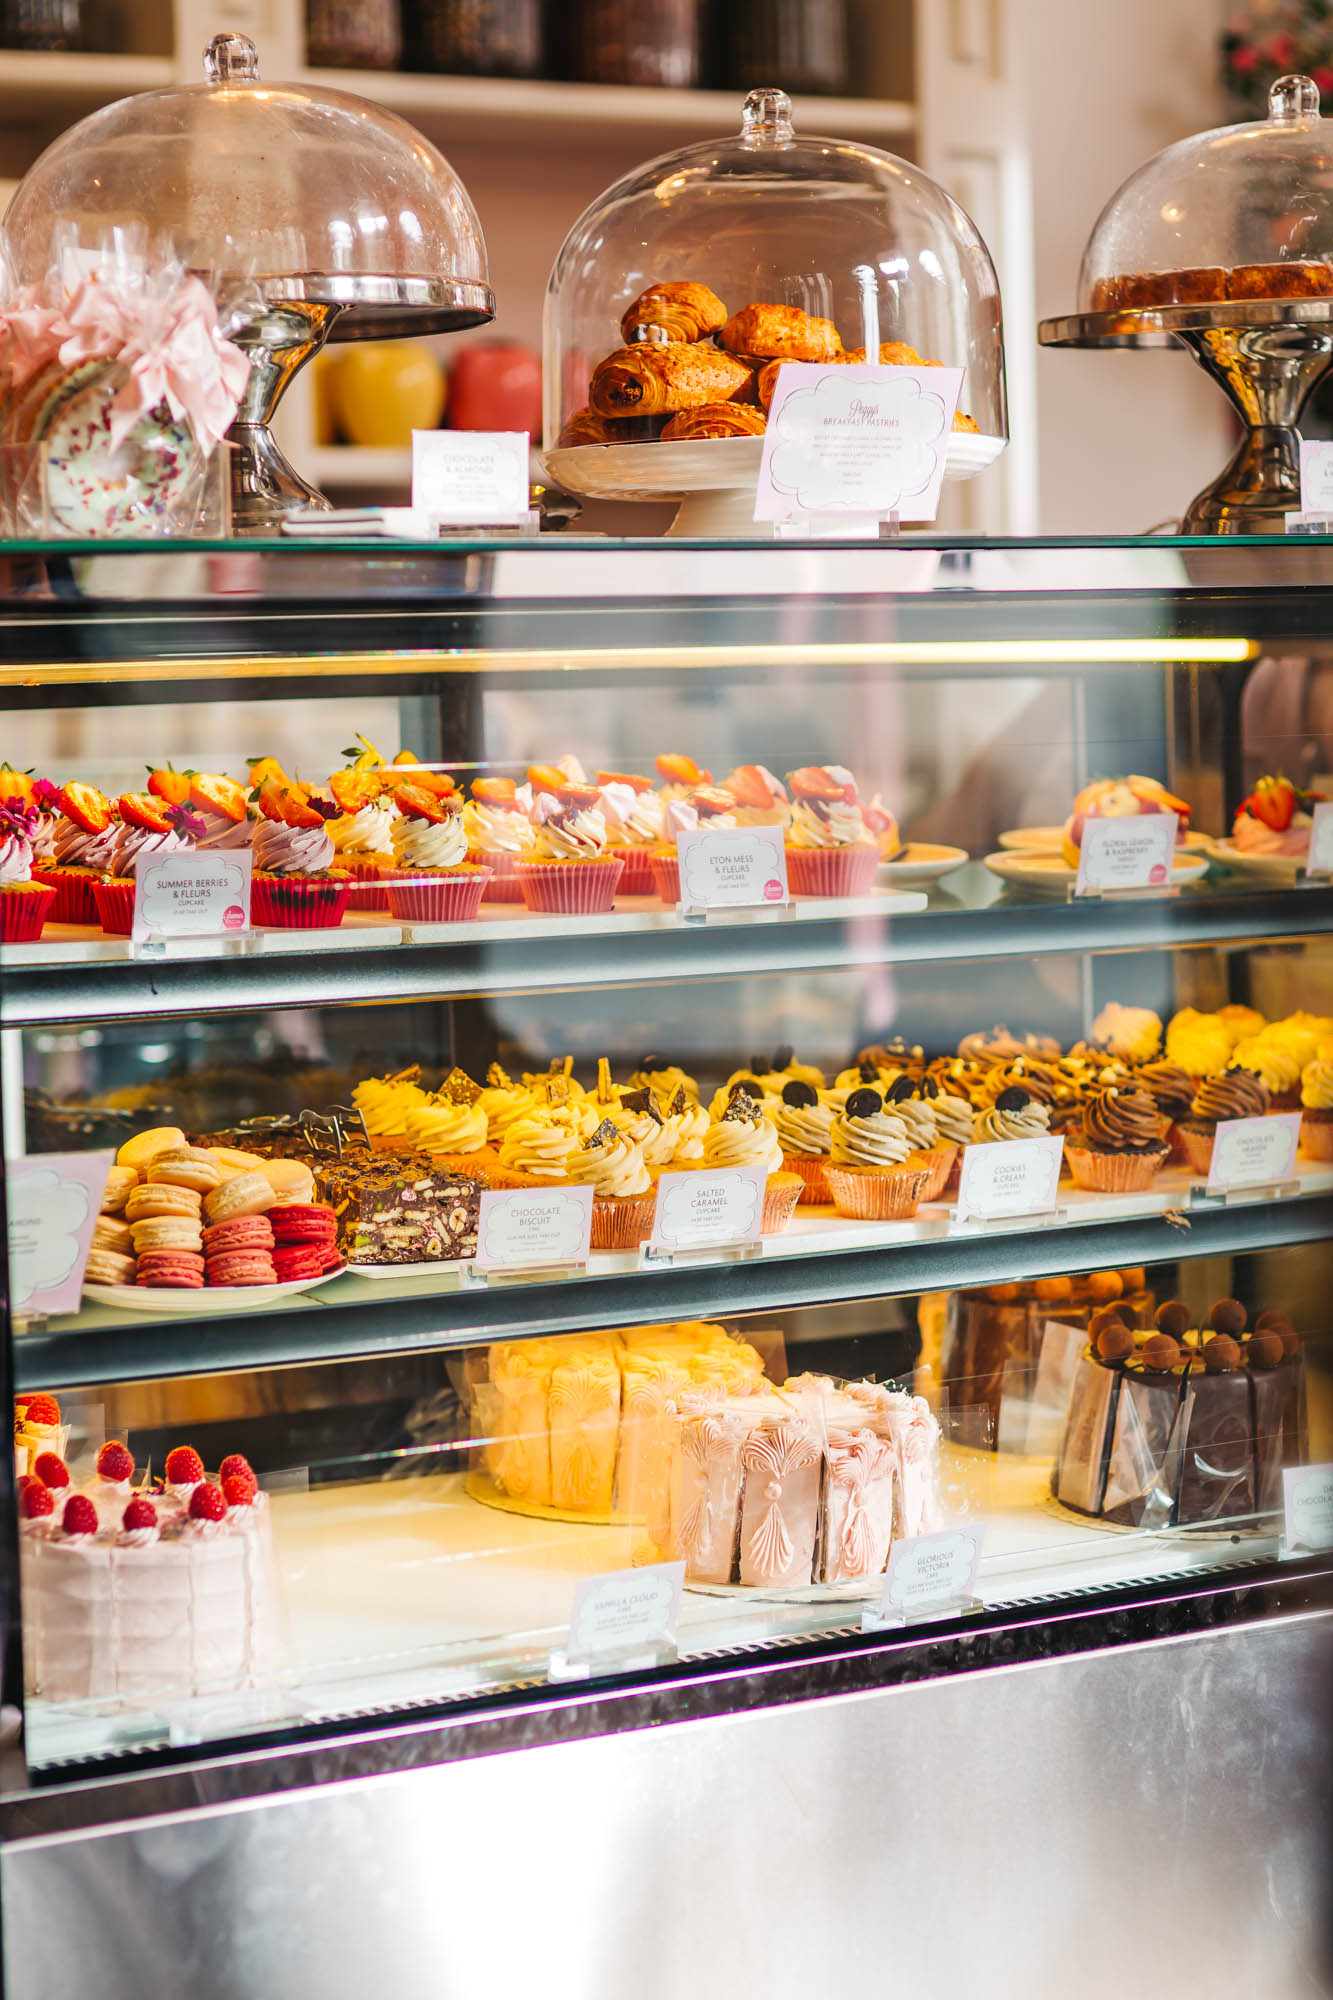 Peggy Porschen's famous cakes and cupcakes